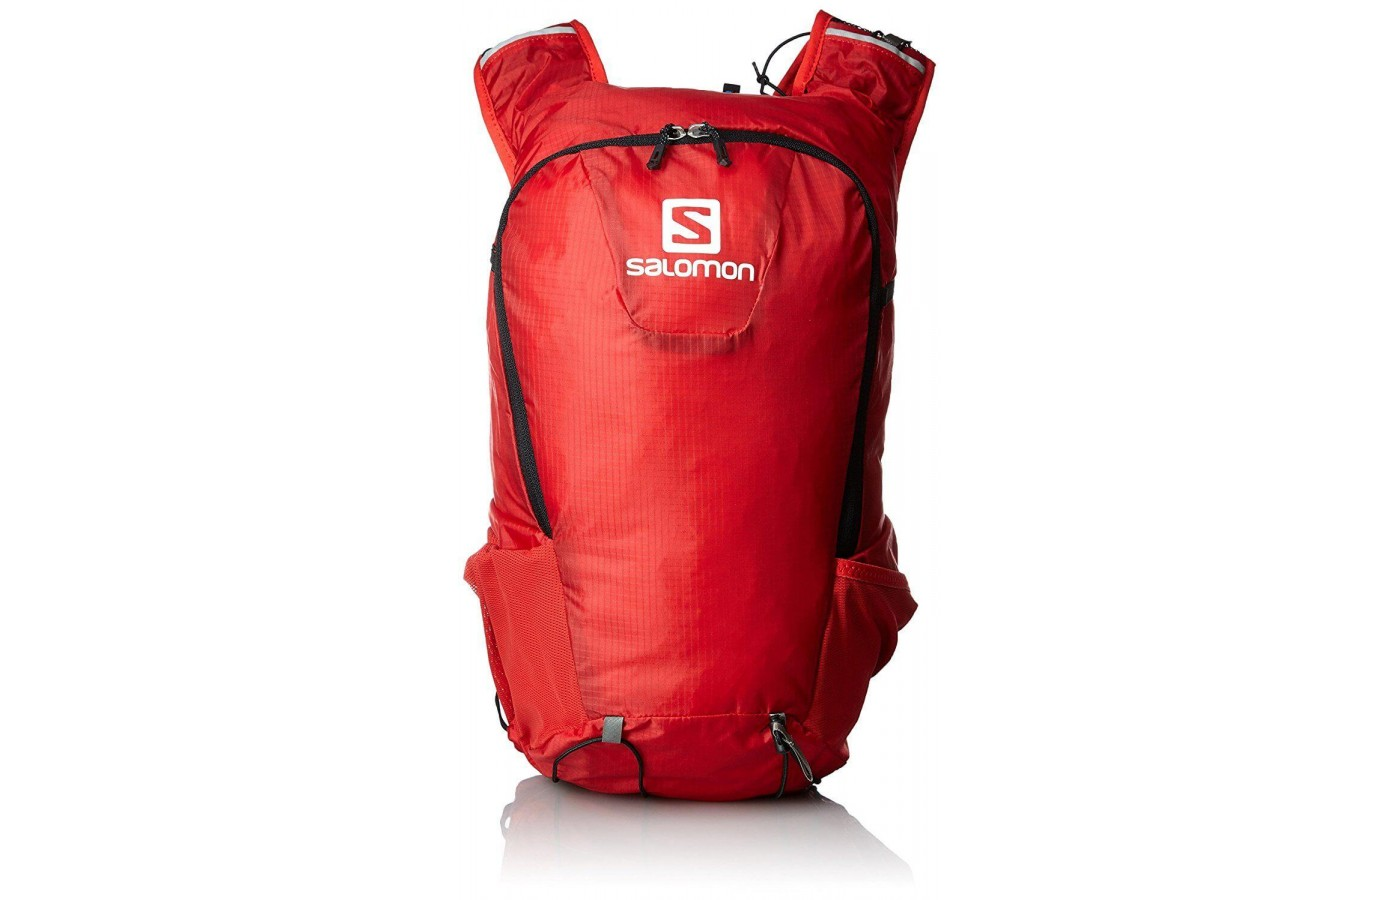 The Salomon Skin Pro 15 is a backpack for hiking on trails